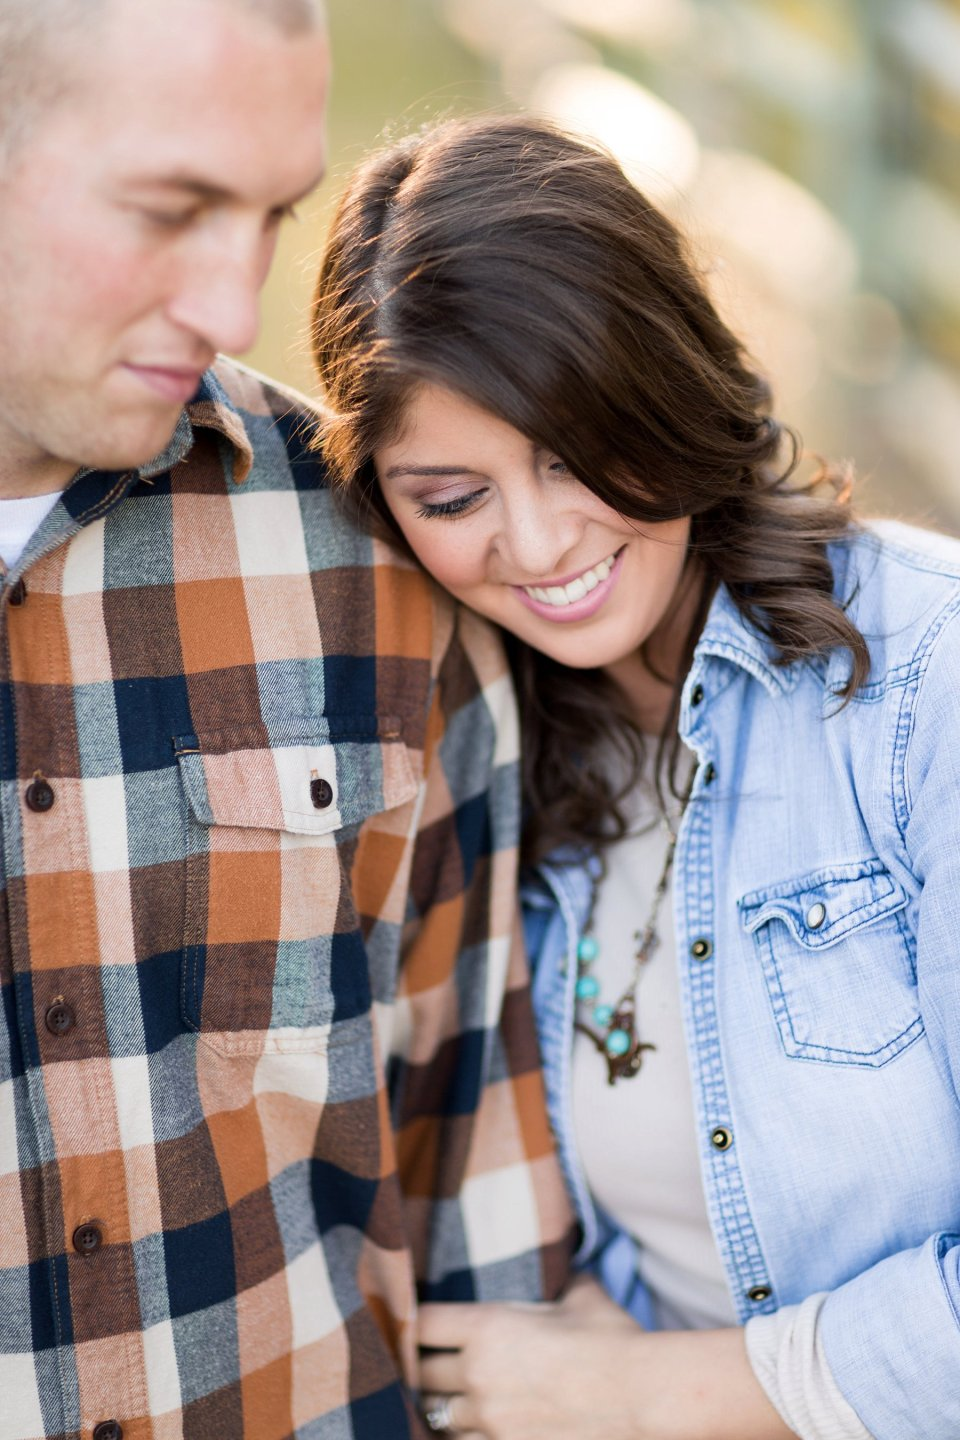 Grass Field Engagement Photos | Camp Milton Anniversary Session | Bri Cibene Photography www.bricibene.com